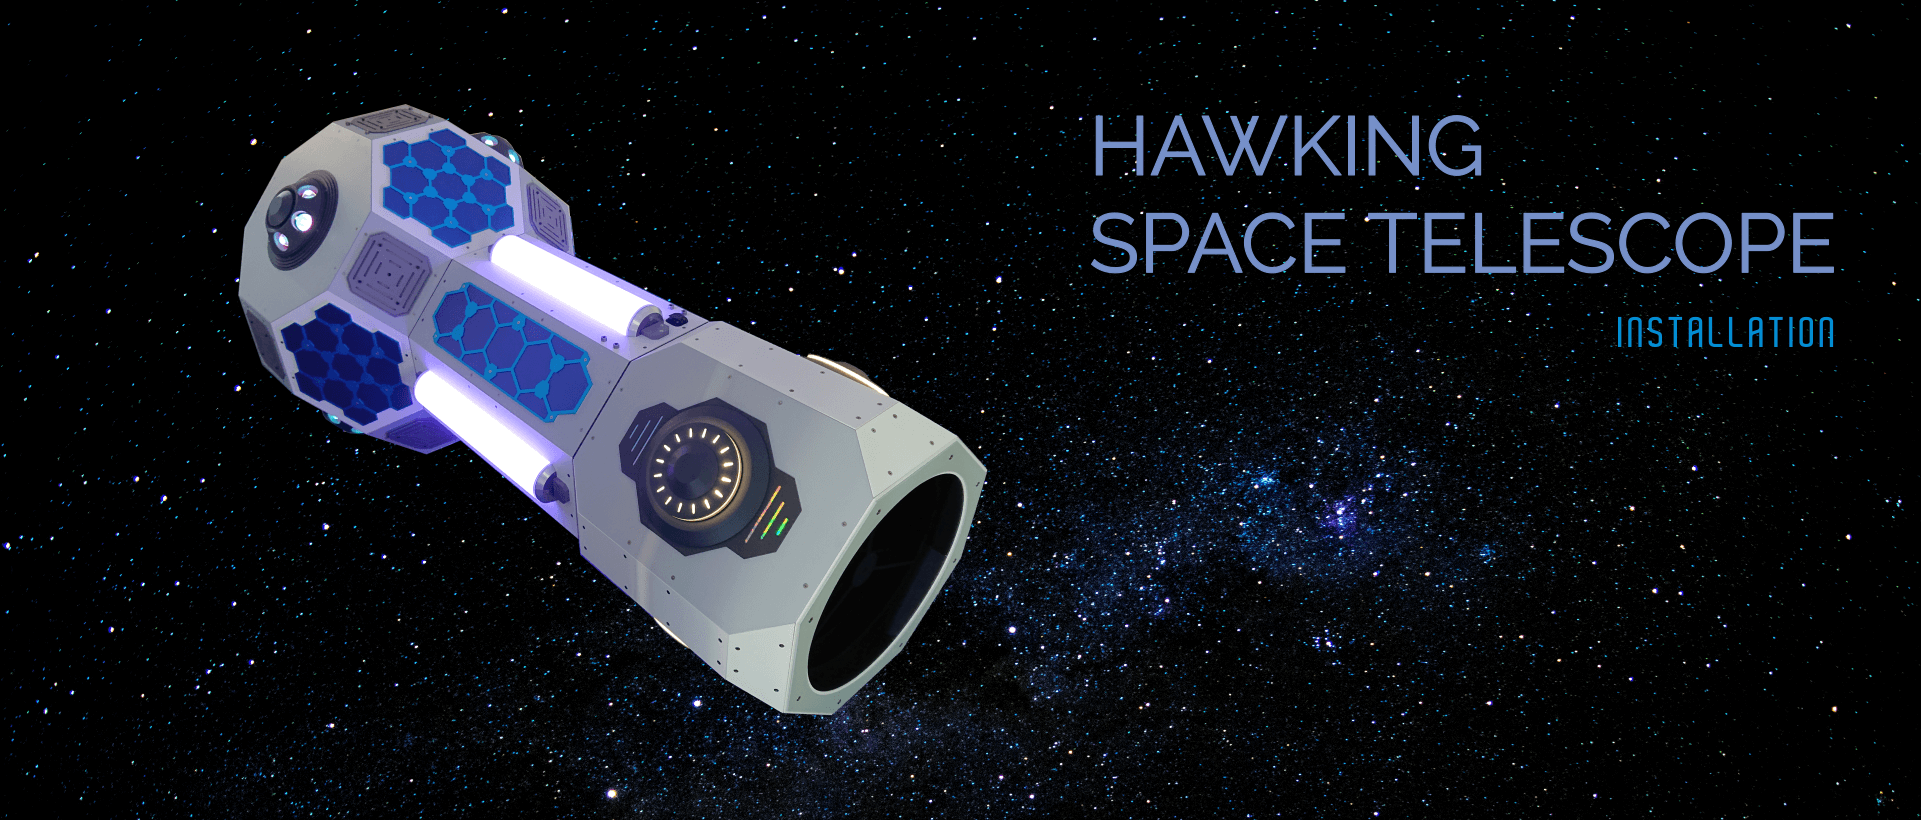 Hawking Space Telescope